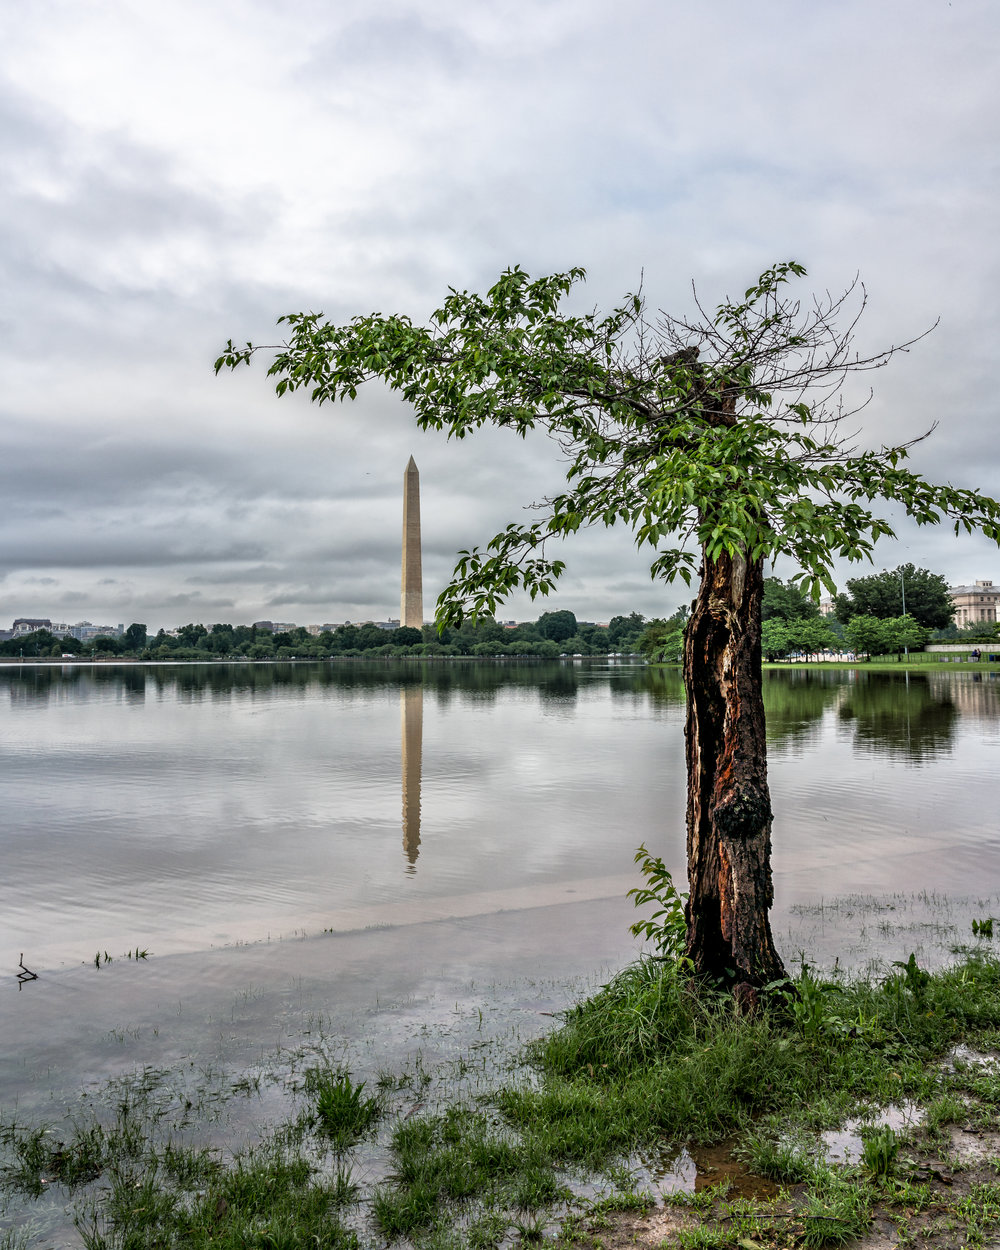 One of the best trees around the tidal basin, reflection isn't to shabby either.